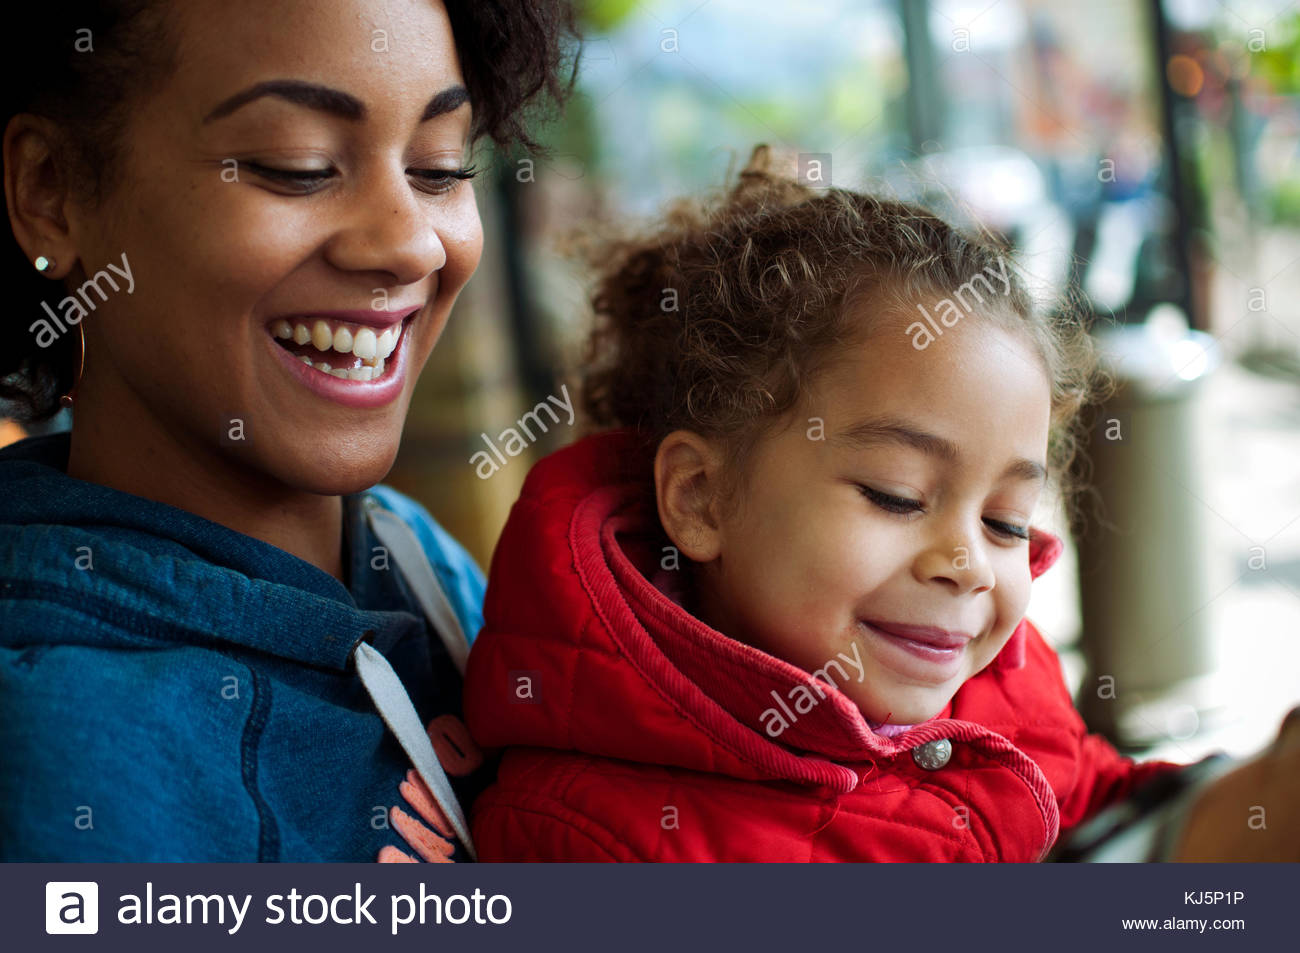 Mother and daughter smiling close-up - Stock Image